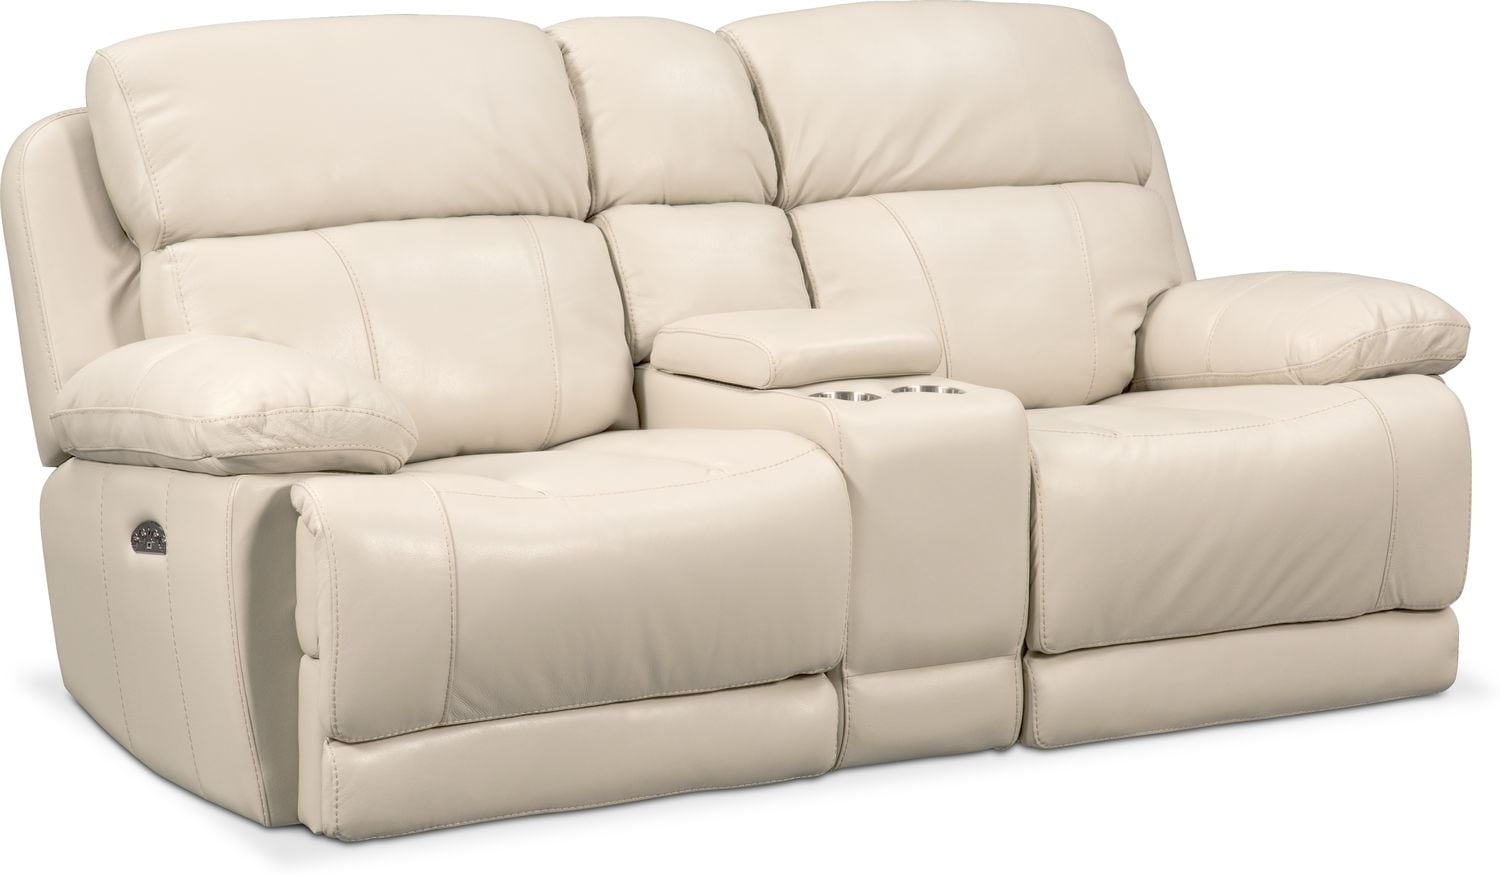 Monte Carlo Dual Power Reclining Sofa And Reclining Loveseat Set Cream American Signature